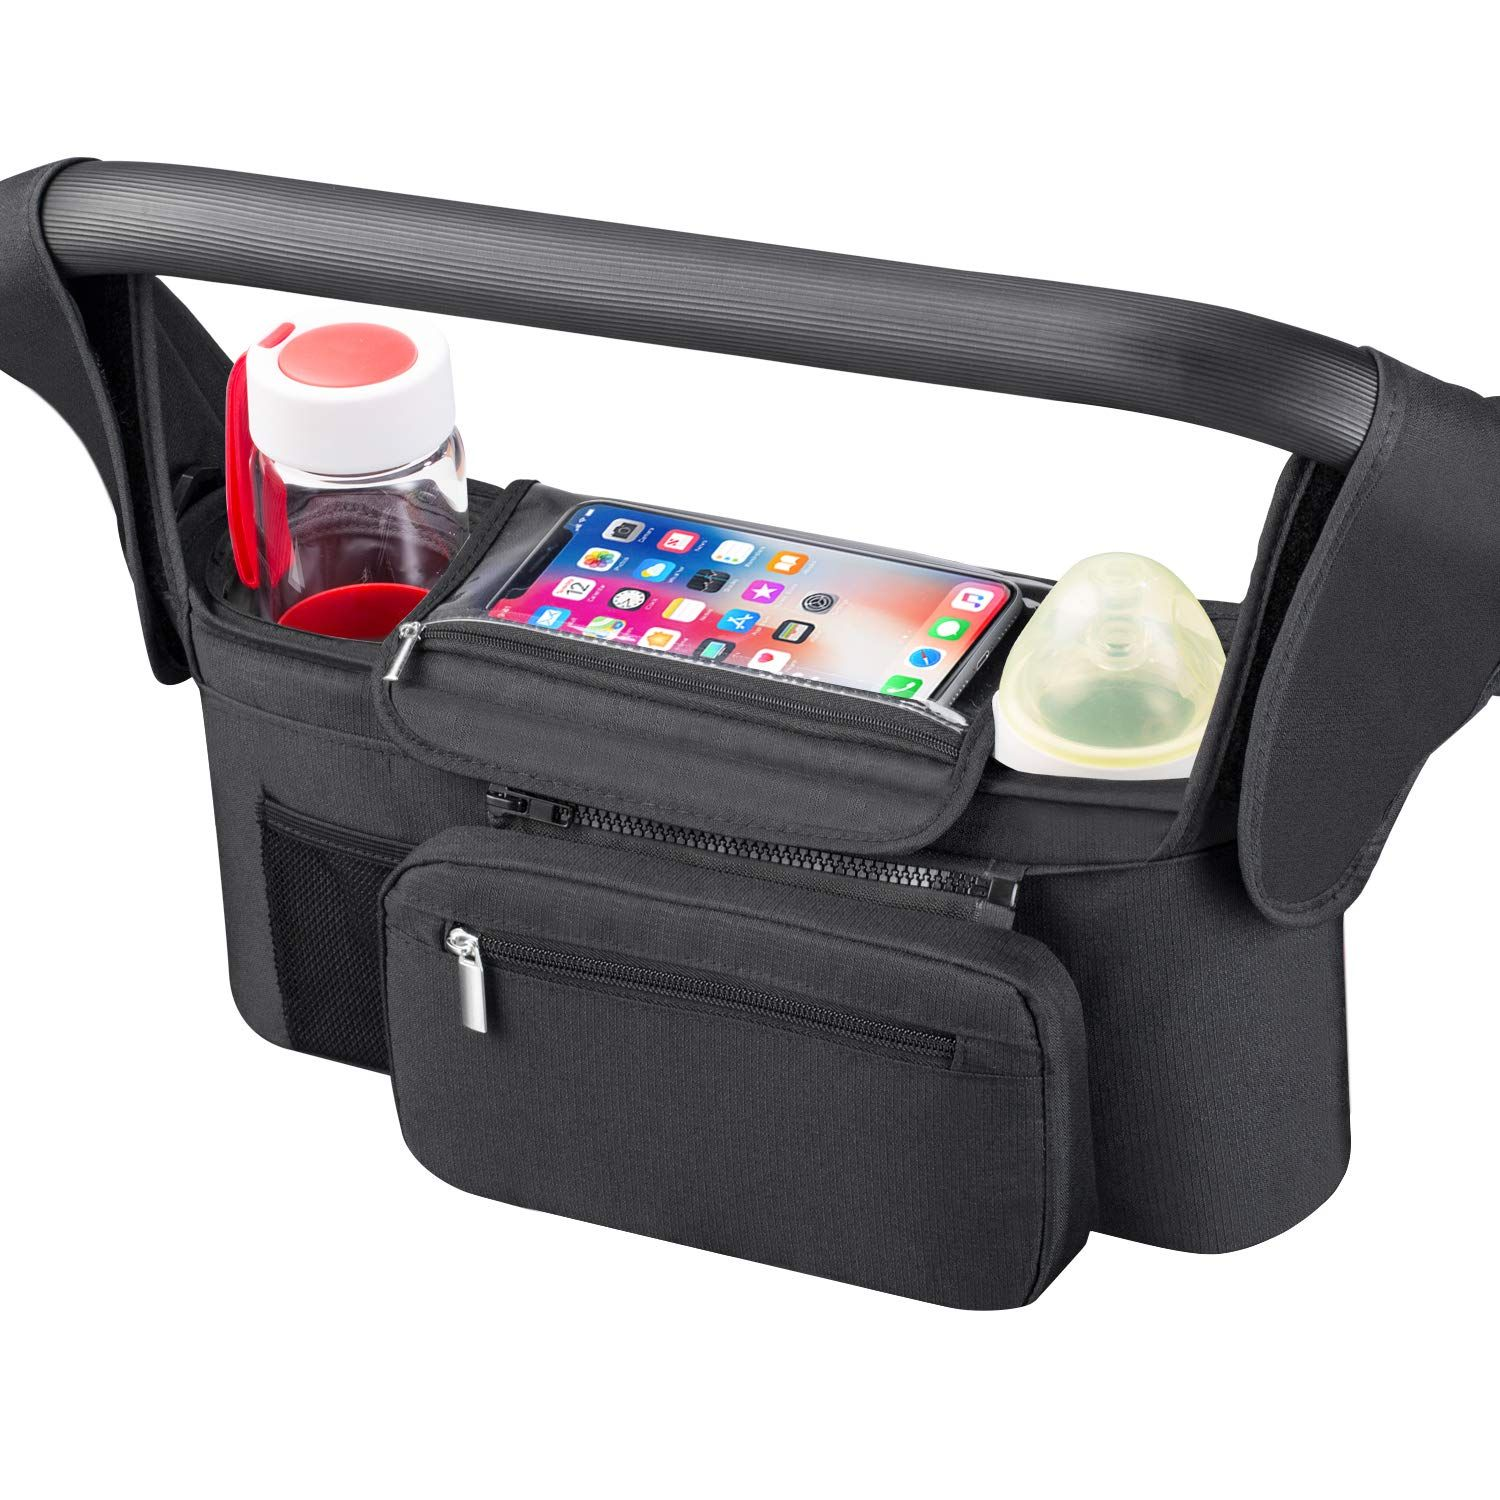 Universal Stroller Organizer [Upgraded] for Smarter Mom